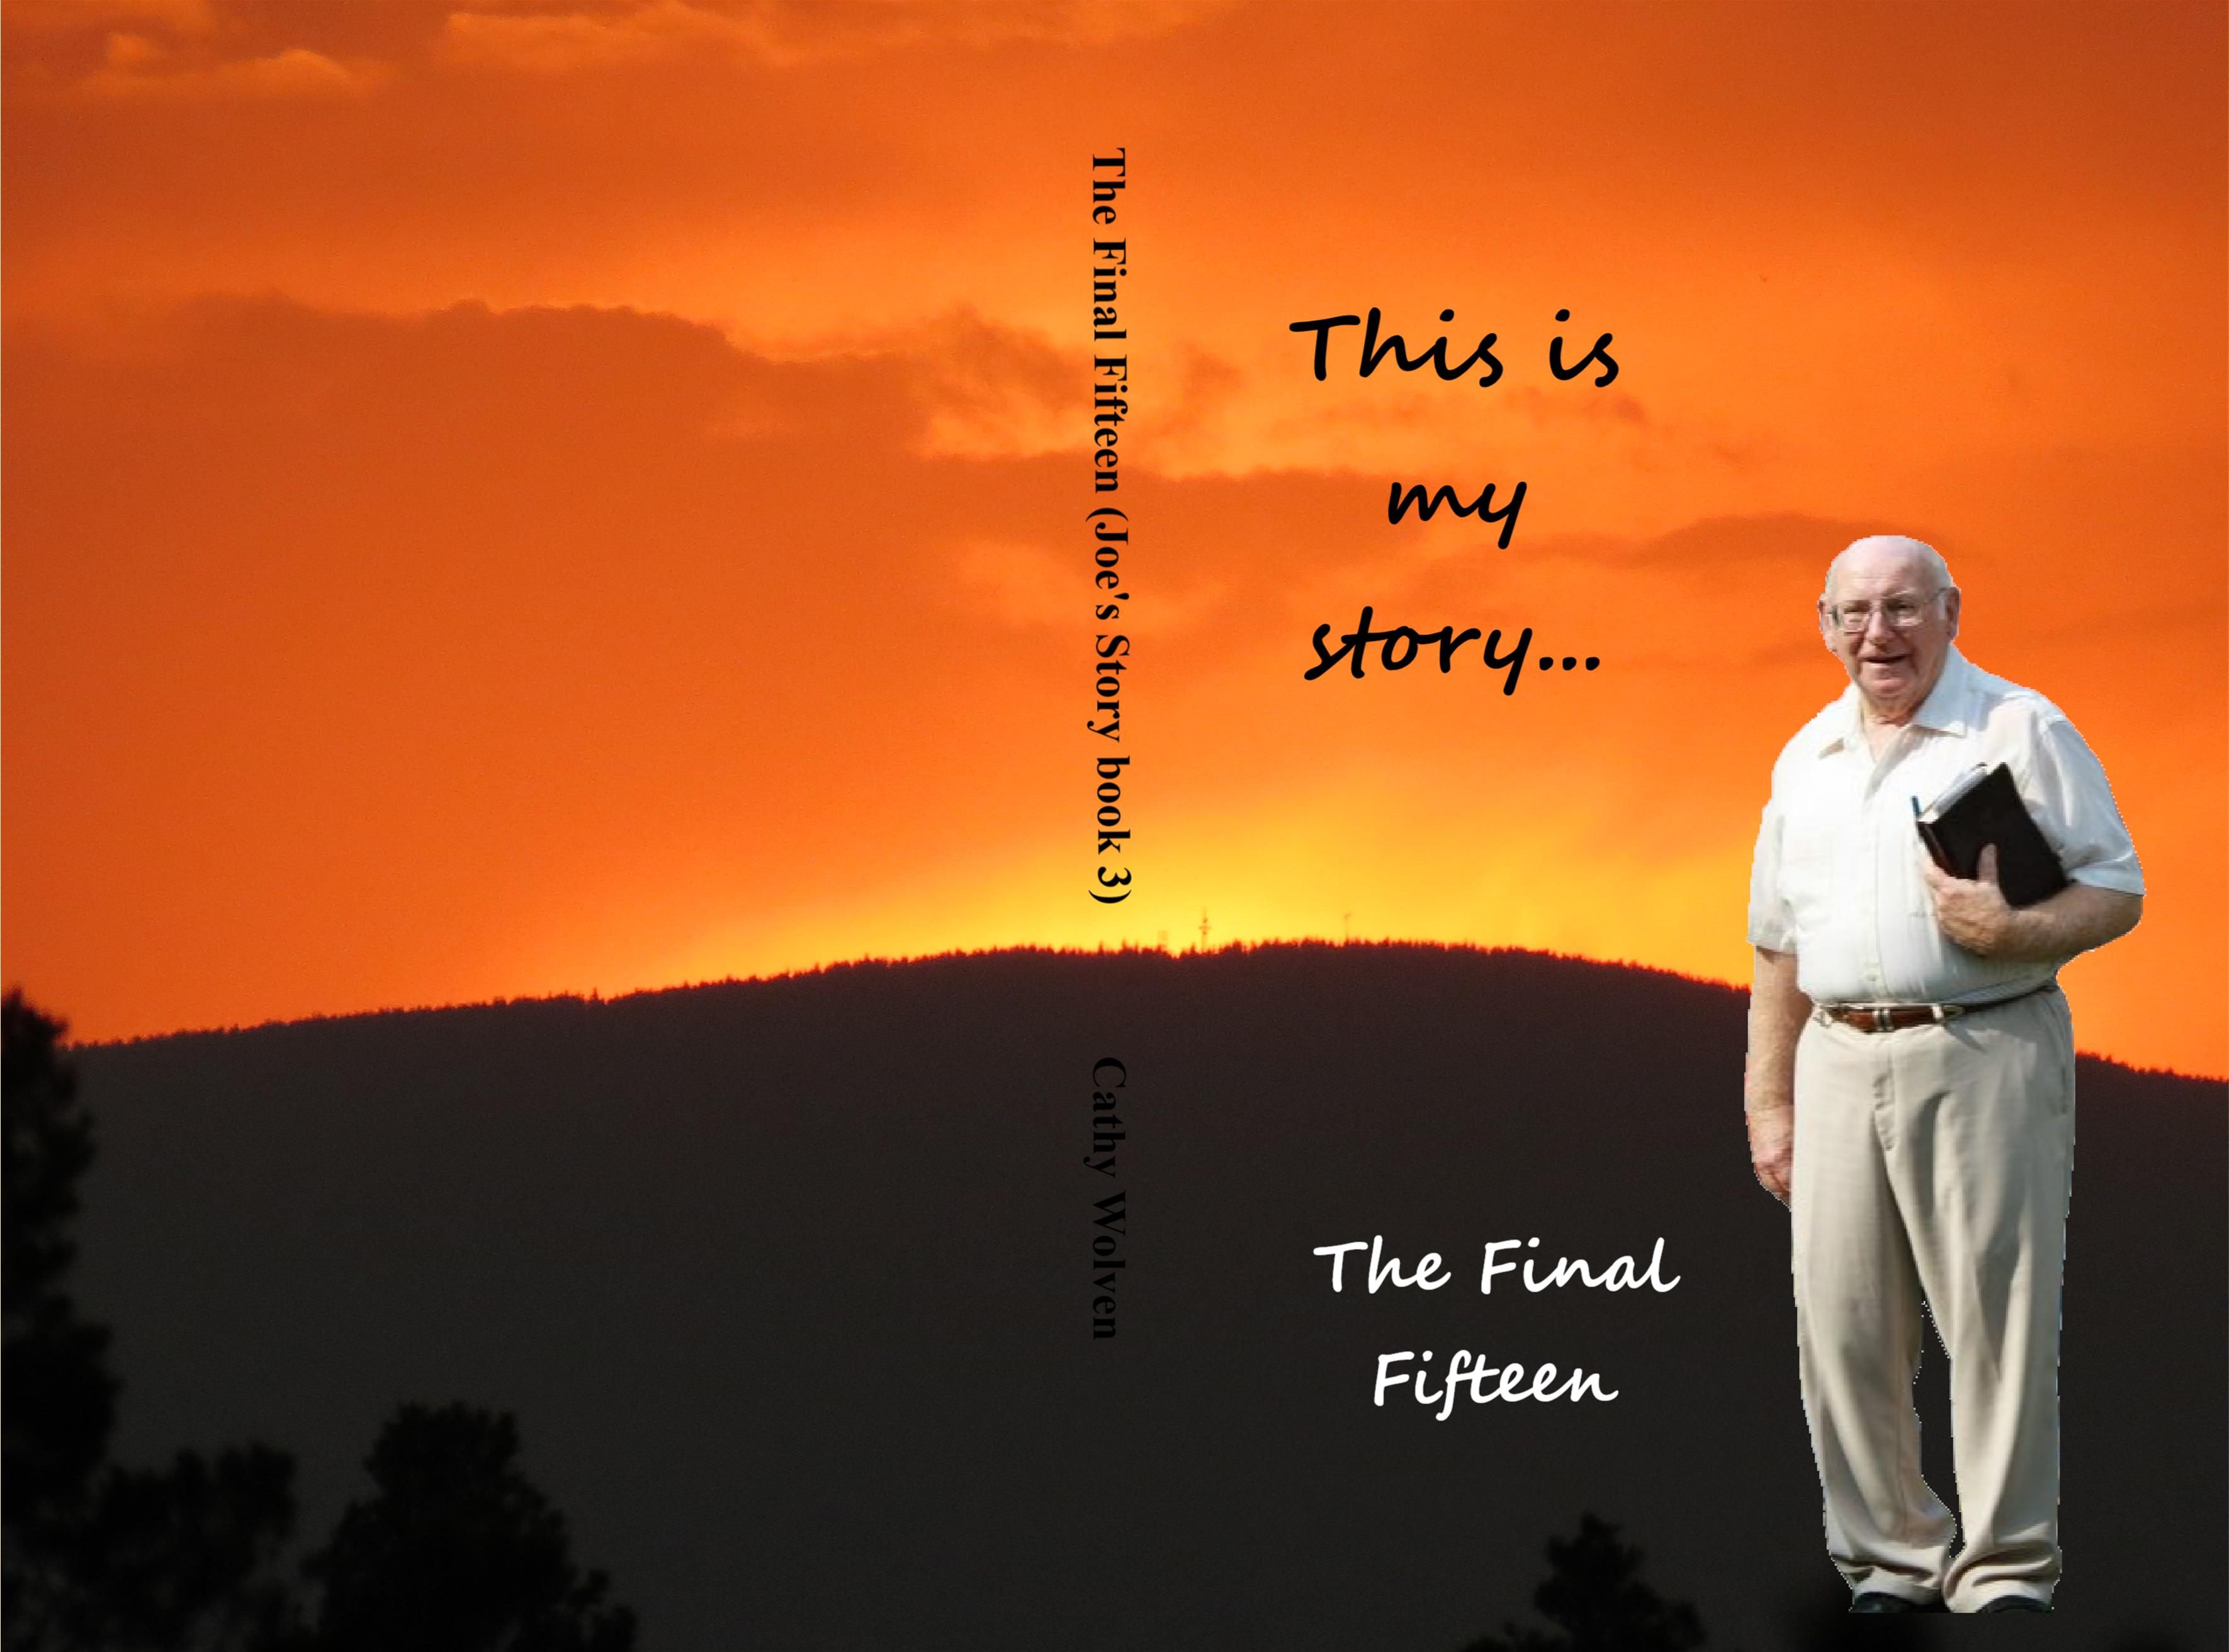 The Final Fifteen cover image